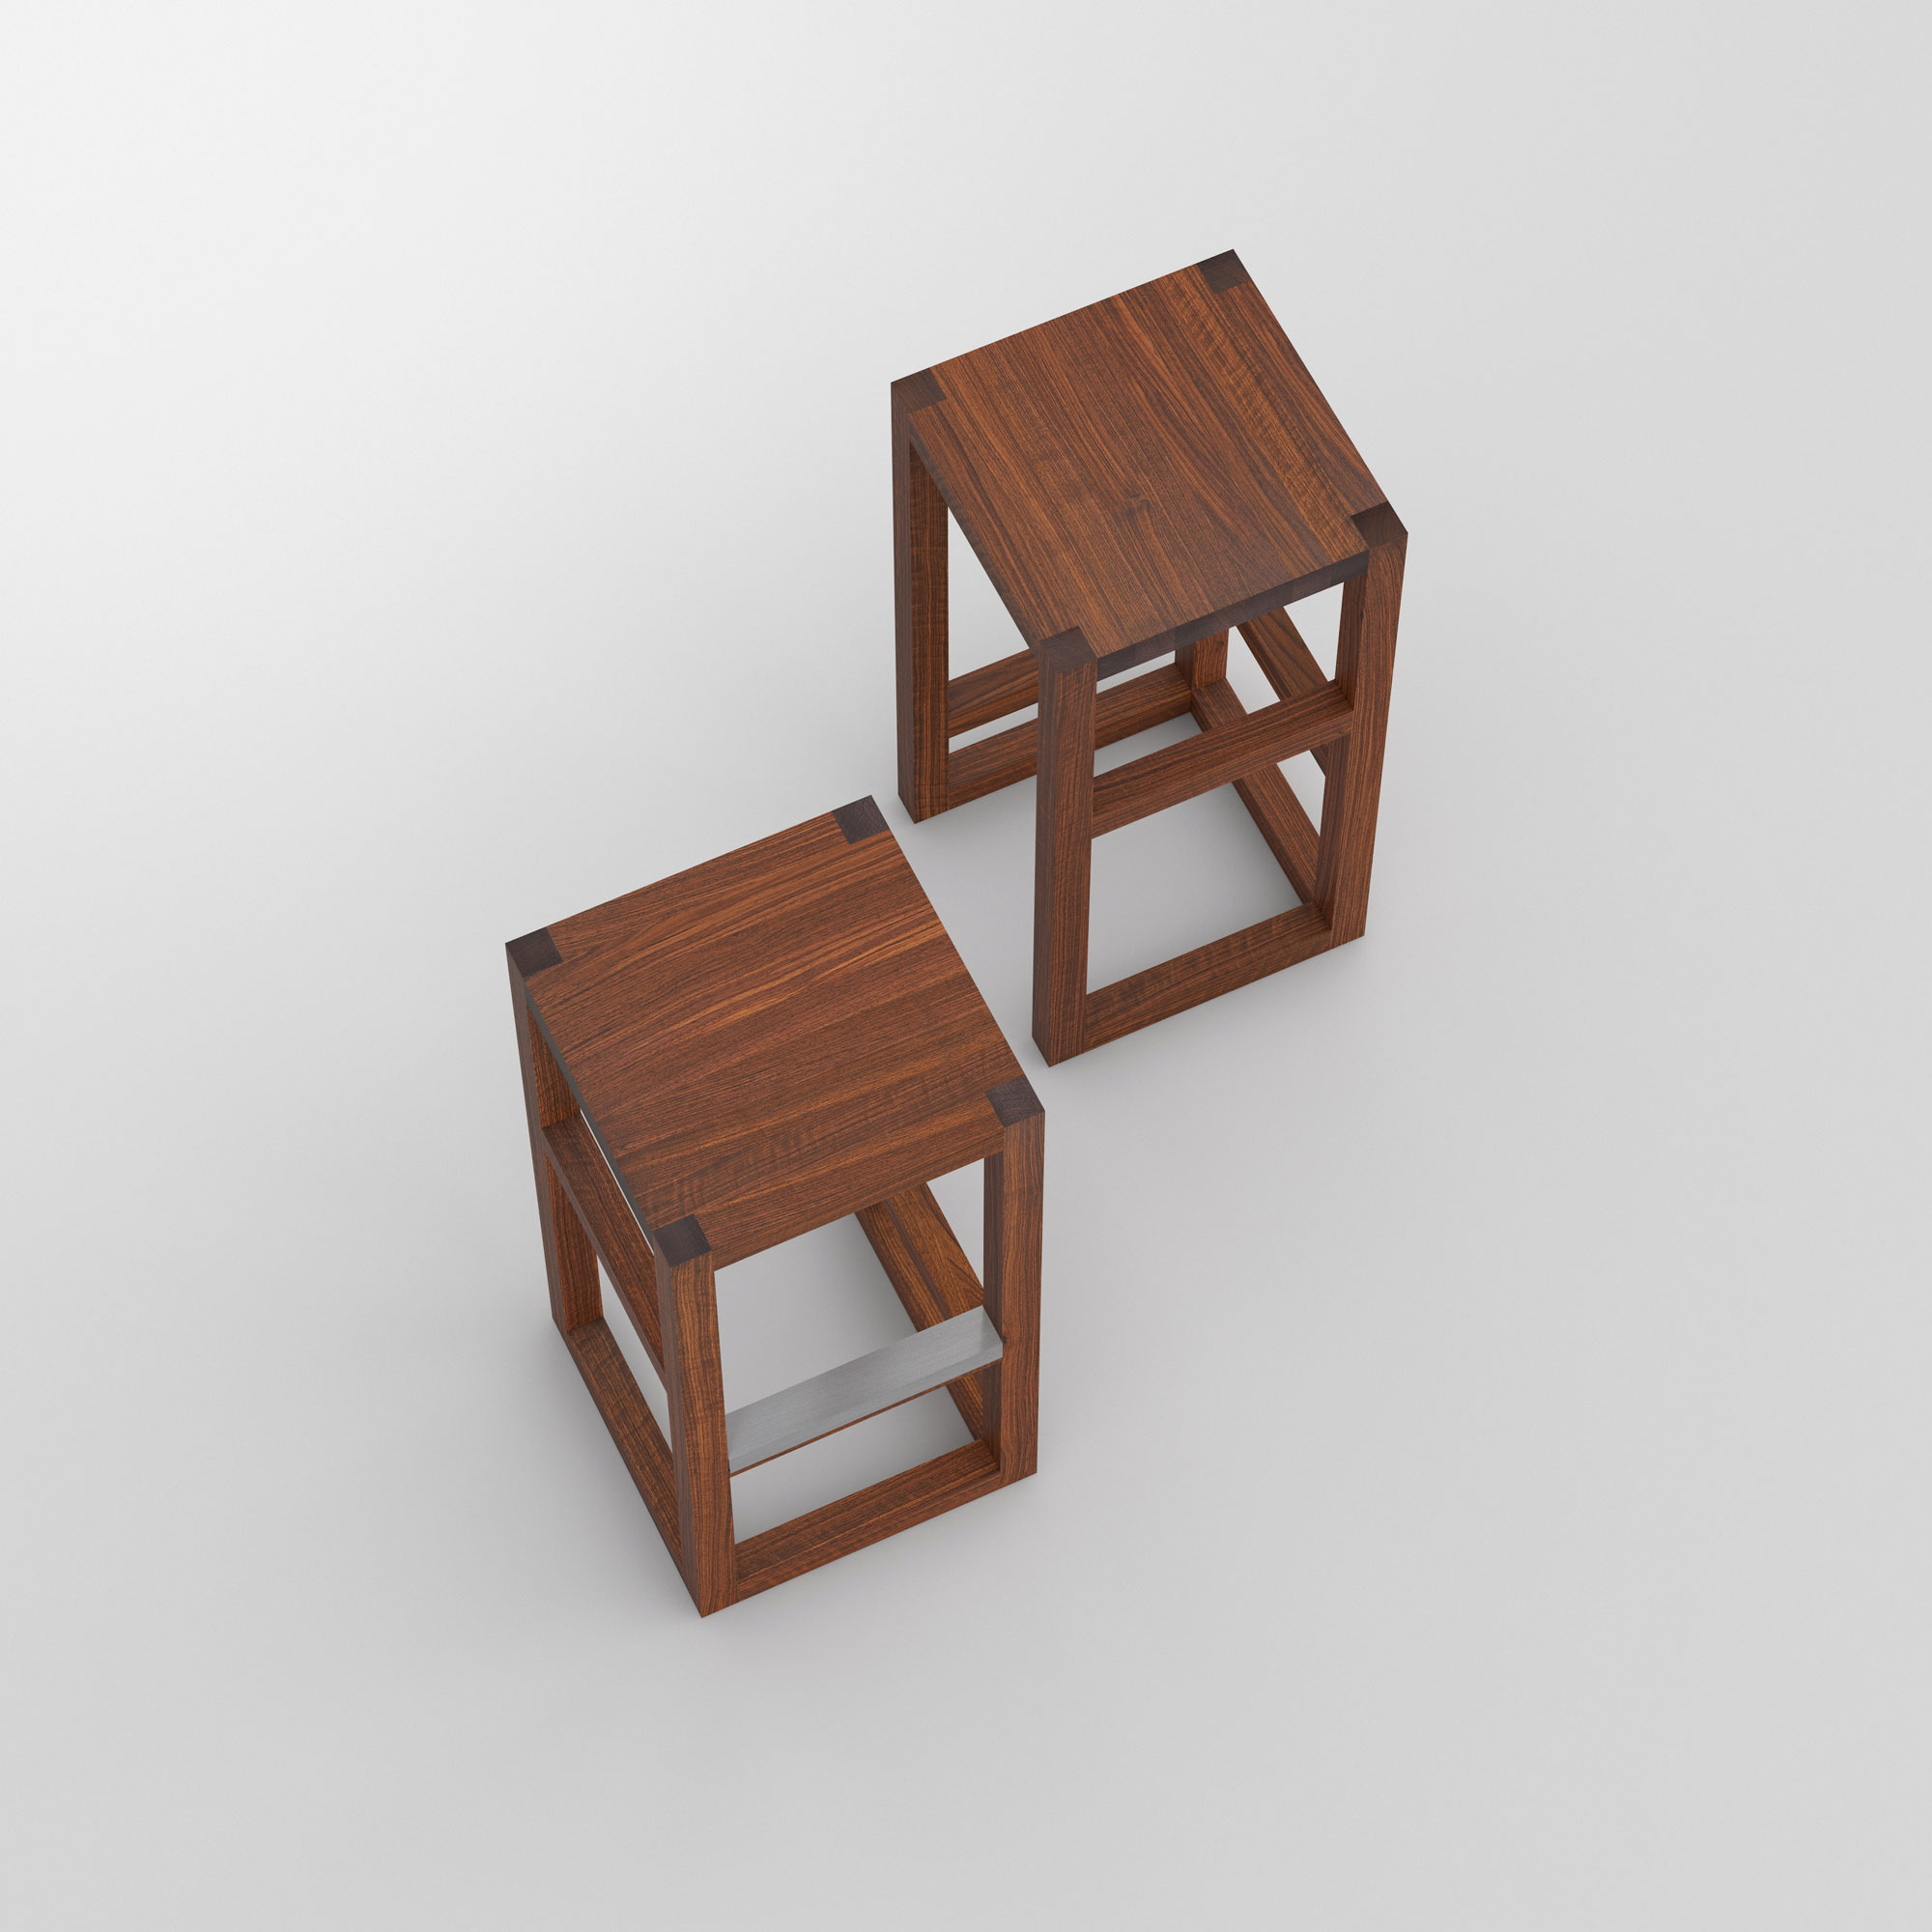 Bar Stool Solid Wood STEP cam2 custom made in solid wood by vitamin design